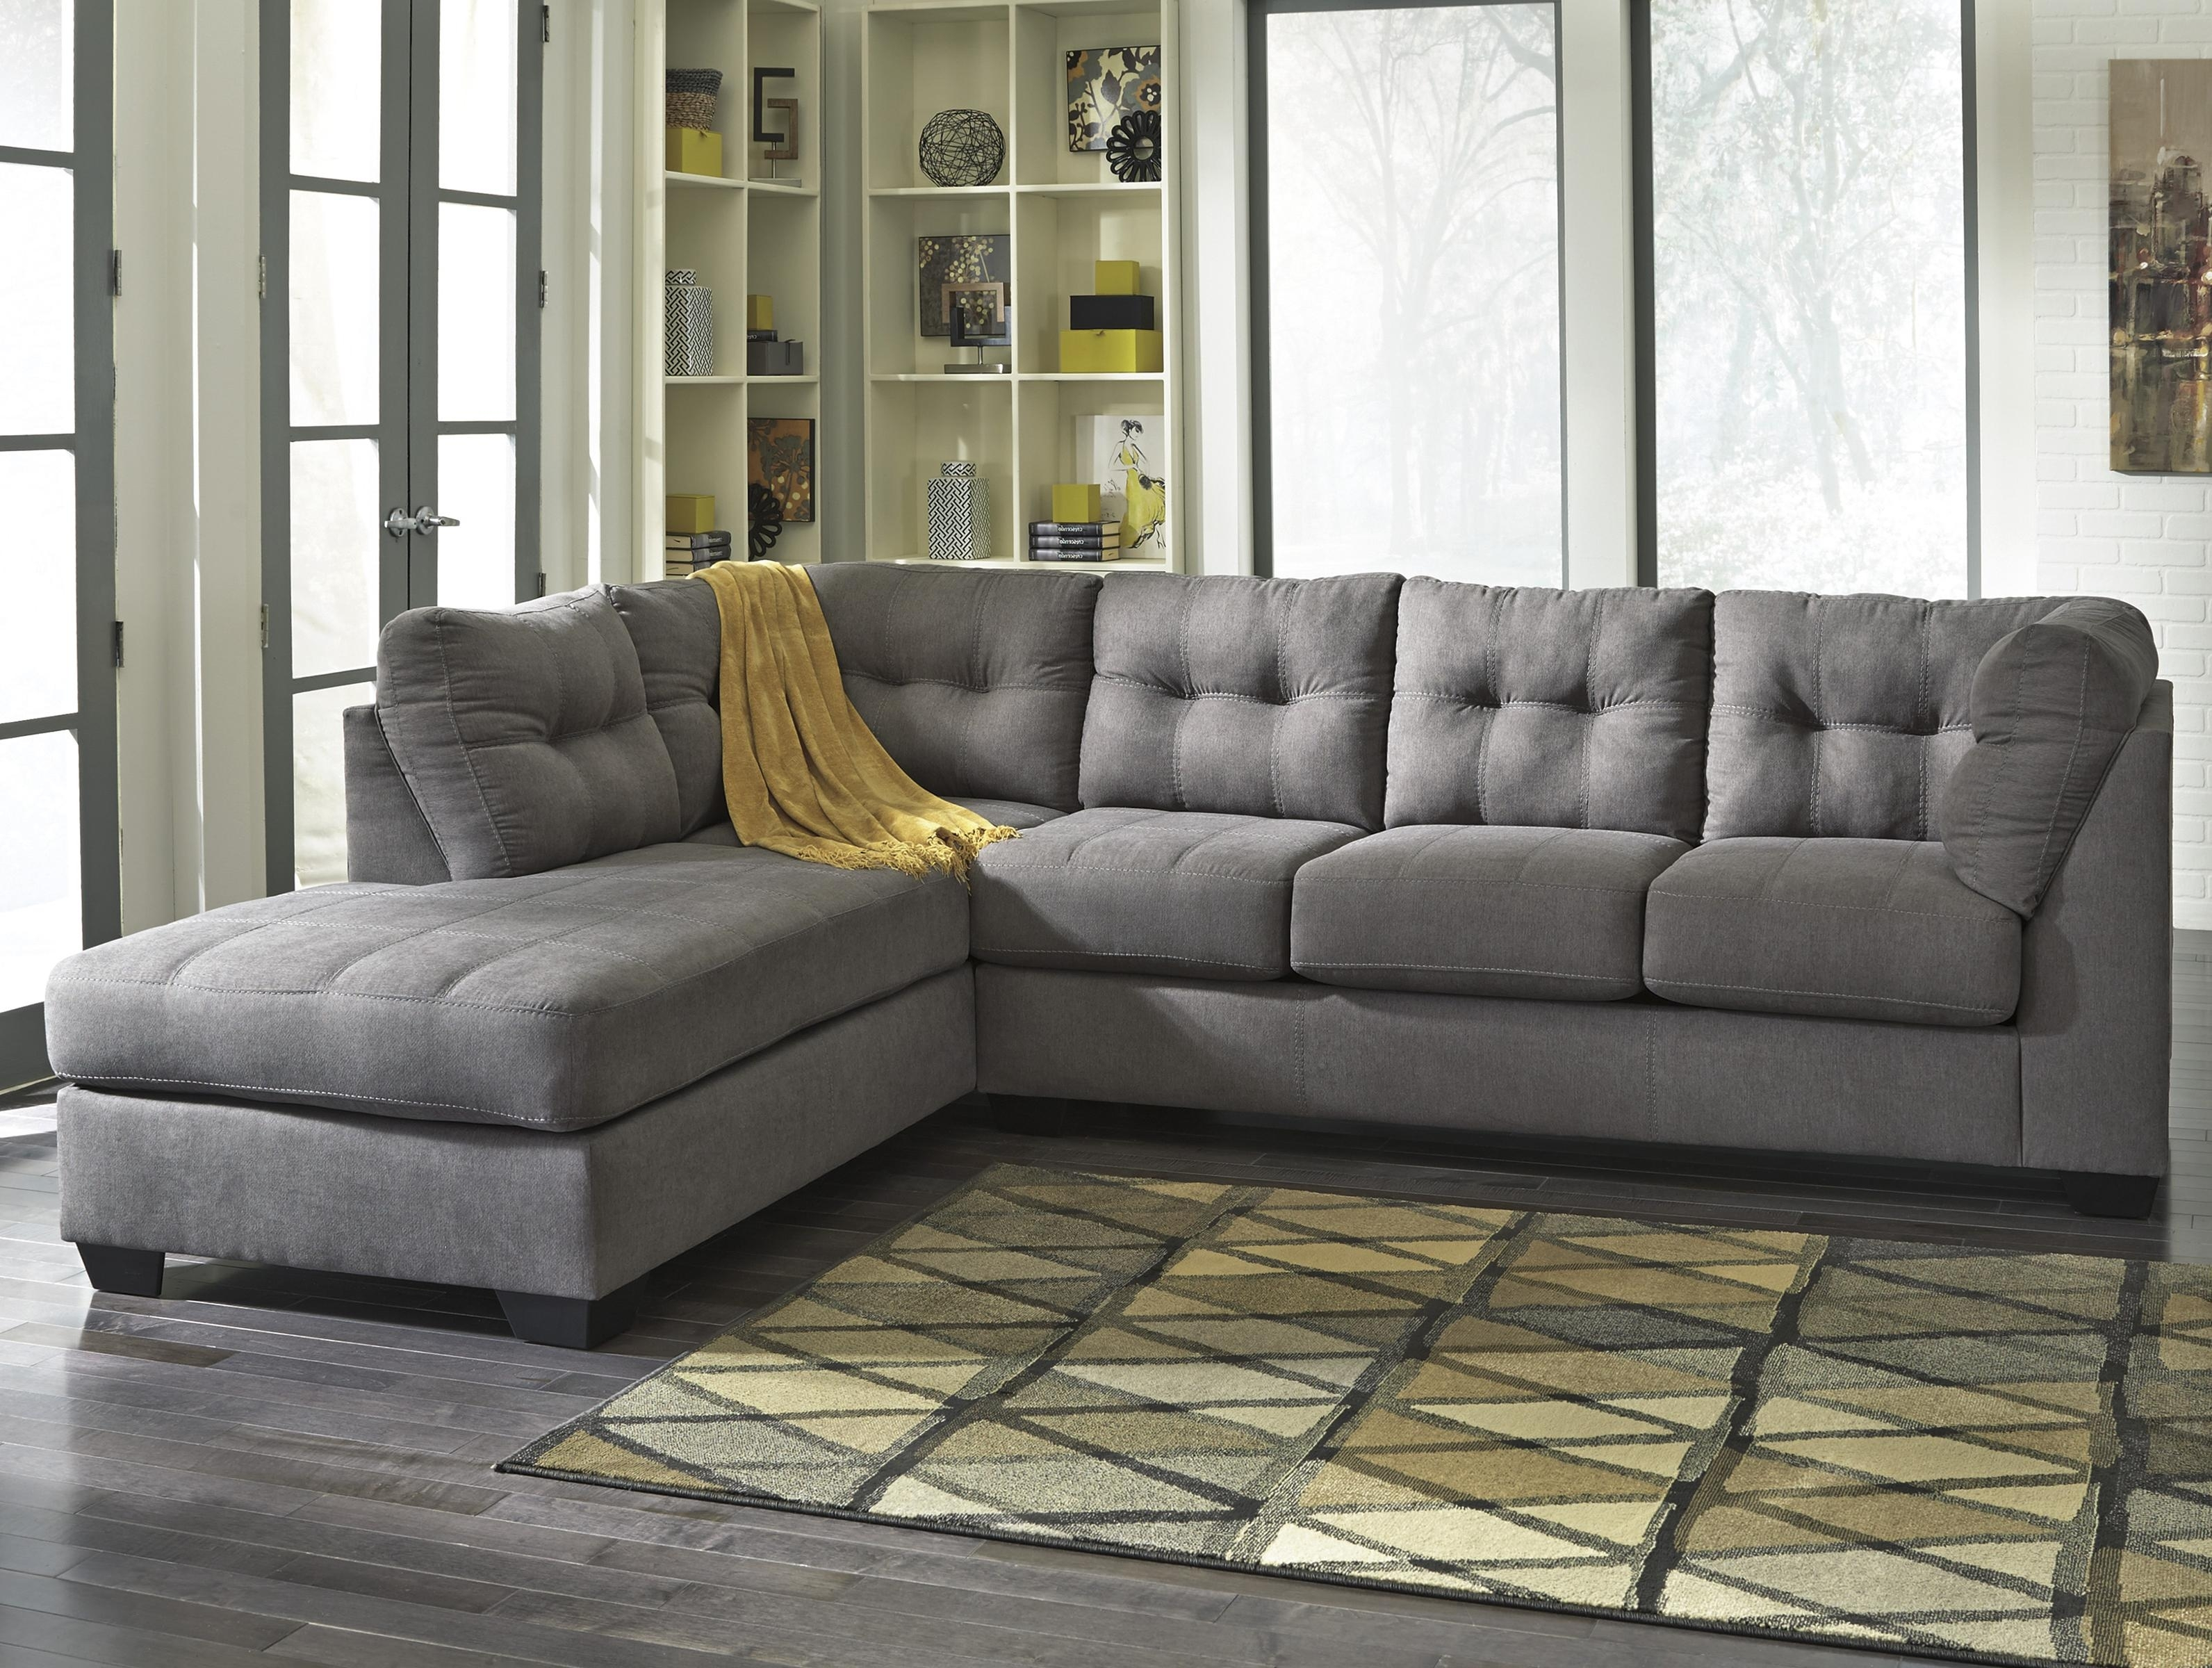 Choosing 2 Piece Sectional Sofa - Elites Home Decor for Kerri 2 Piece Sectionals With Laf Chaise (Image 6 of 30)